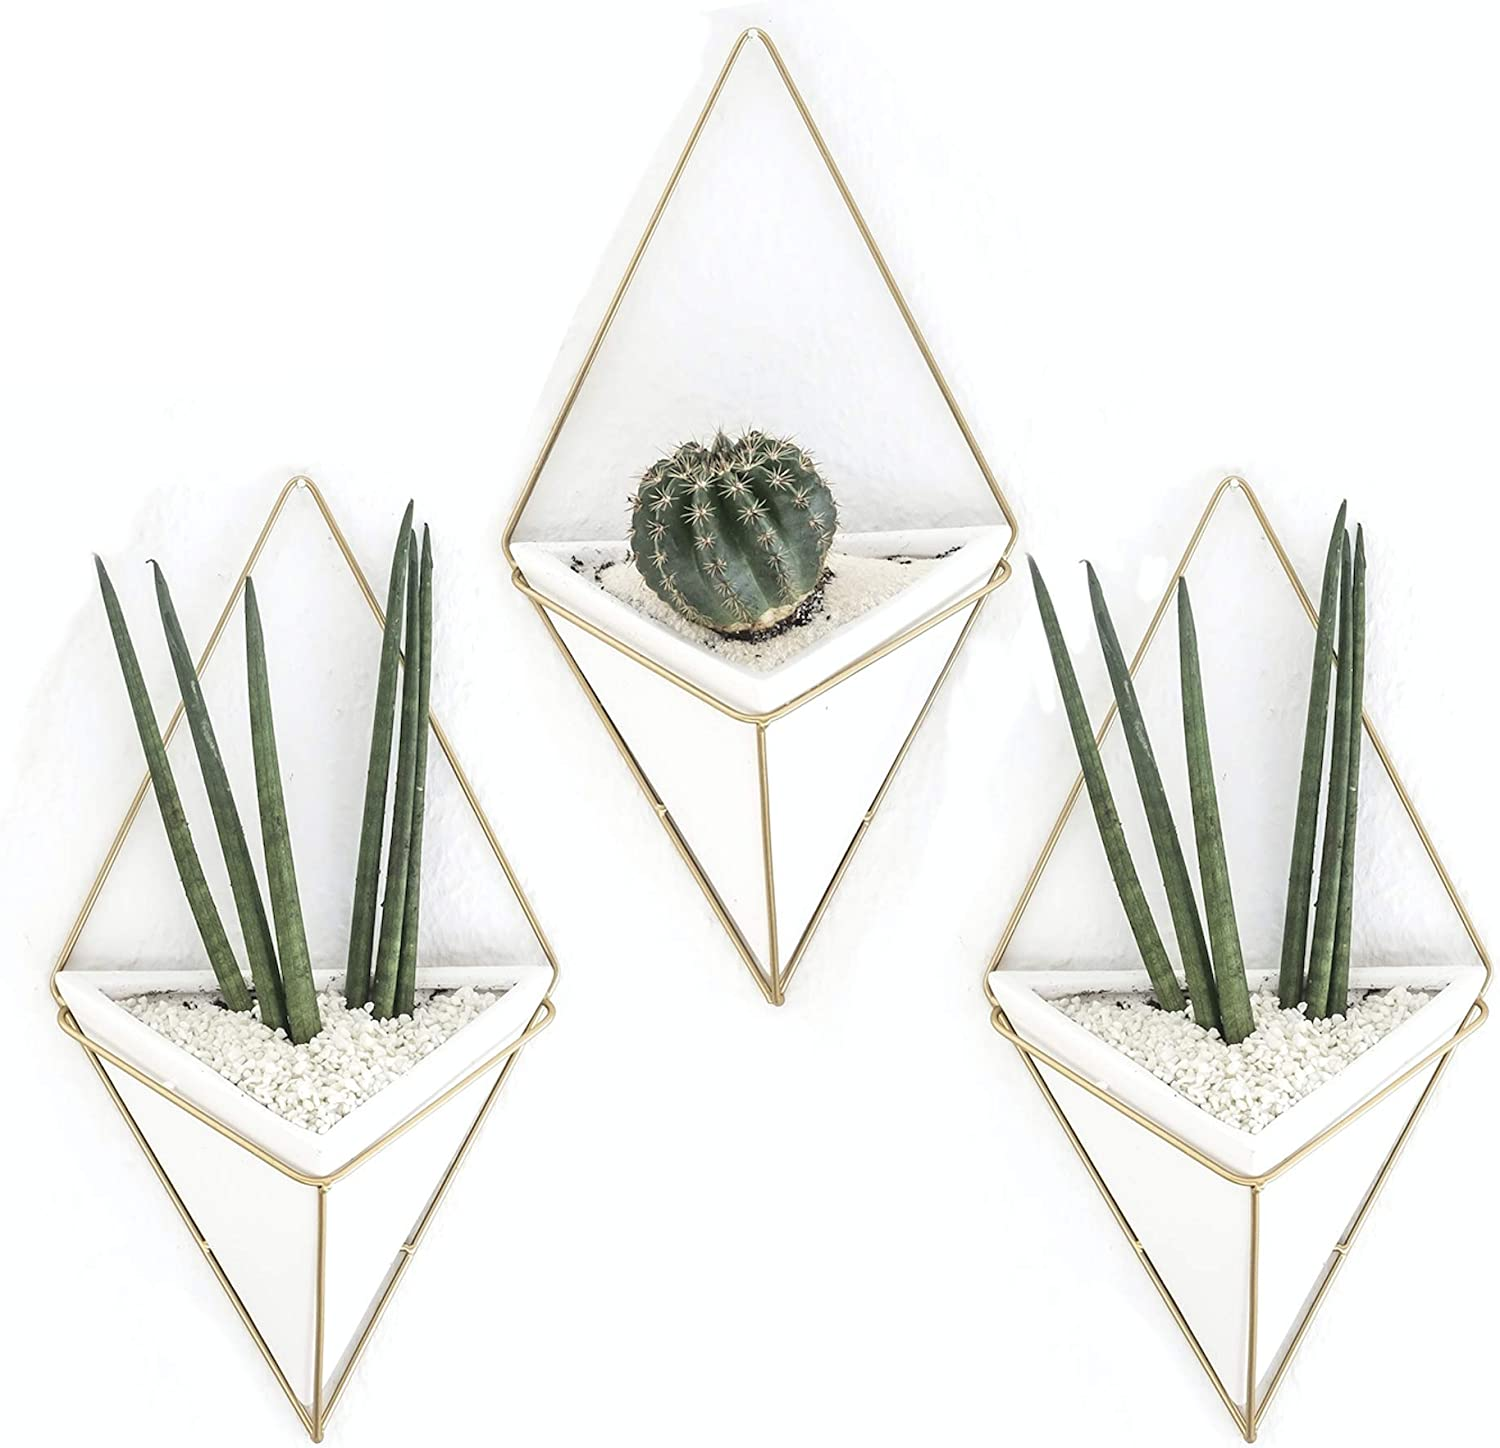 Set of 3 Geometric Hanging Large Succulent Wall Planters Pot, 7 inch White Ceramic Planter with Gold Metal Frame, Decor as Cactus, Succulents, Baby Plants Flower Pots, Vase, Container, by Kimisty